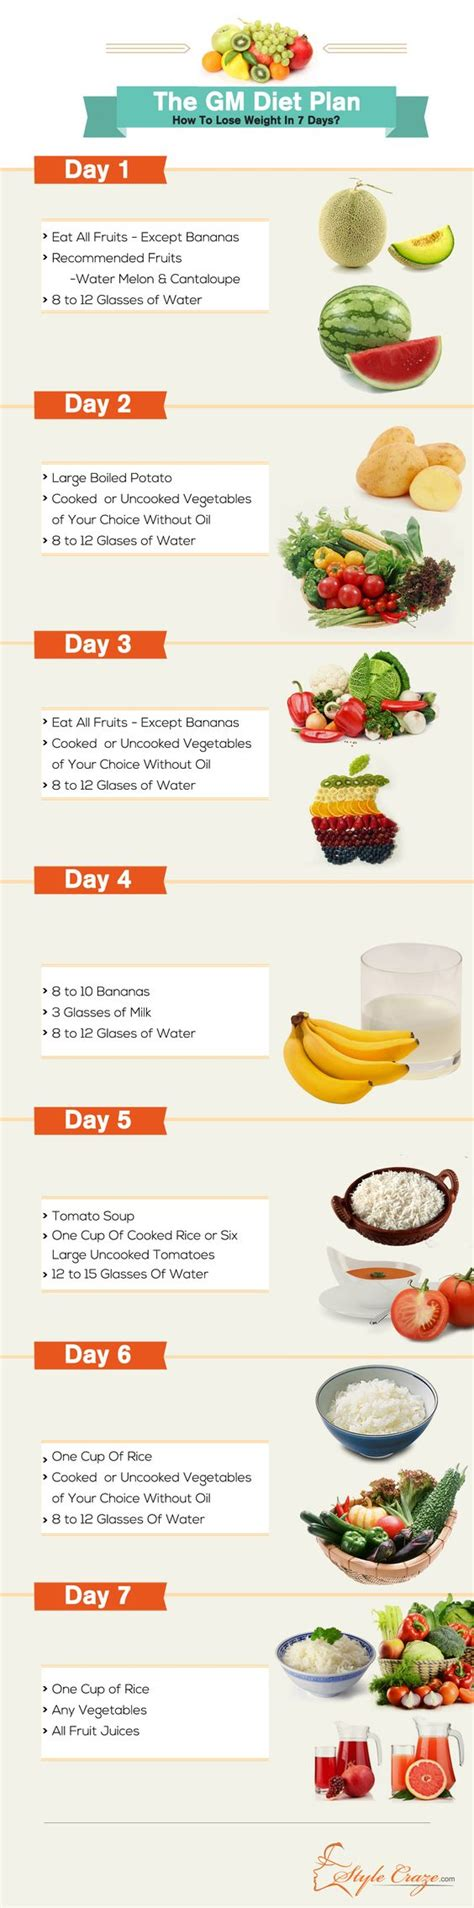 Detox 1 Week Weight Loss by The Gm Diet Plan How To Lose Weight In Just 7 Days